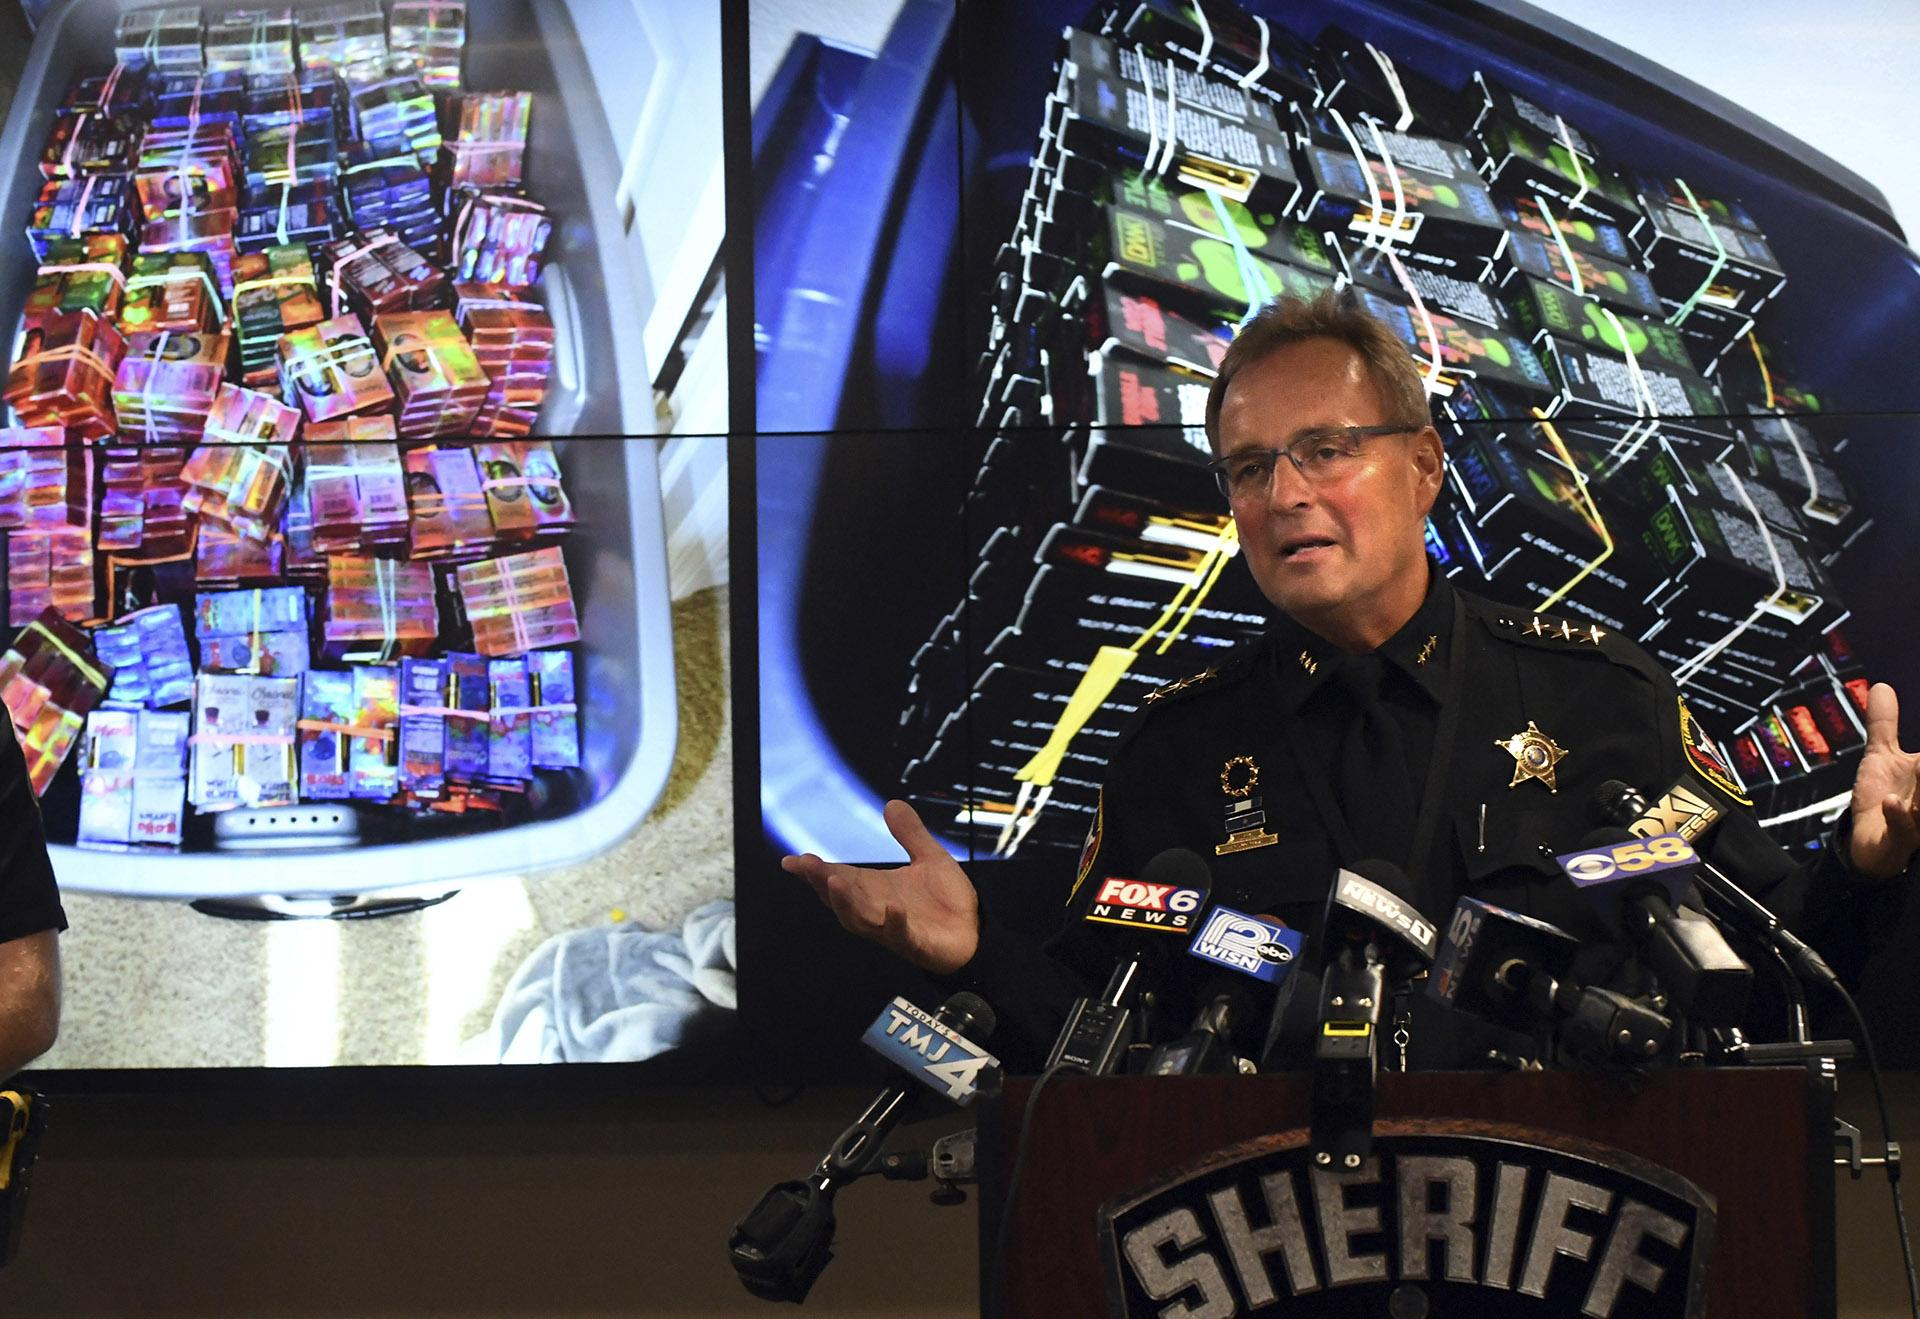 Kenosha County Sheriff David Beth talks about the THC-infused vaping cartridges that were part of a large-scale marijuana operation during a news conference in Kenosha Wednesday, Sept. 11, 2019. (Paul Williams / The Kenosha News via AP)